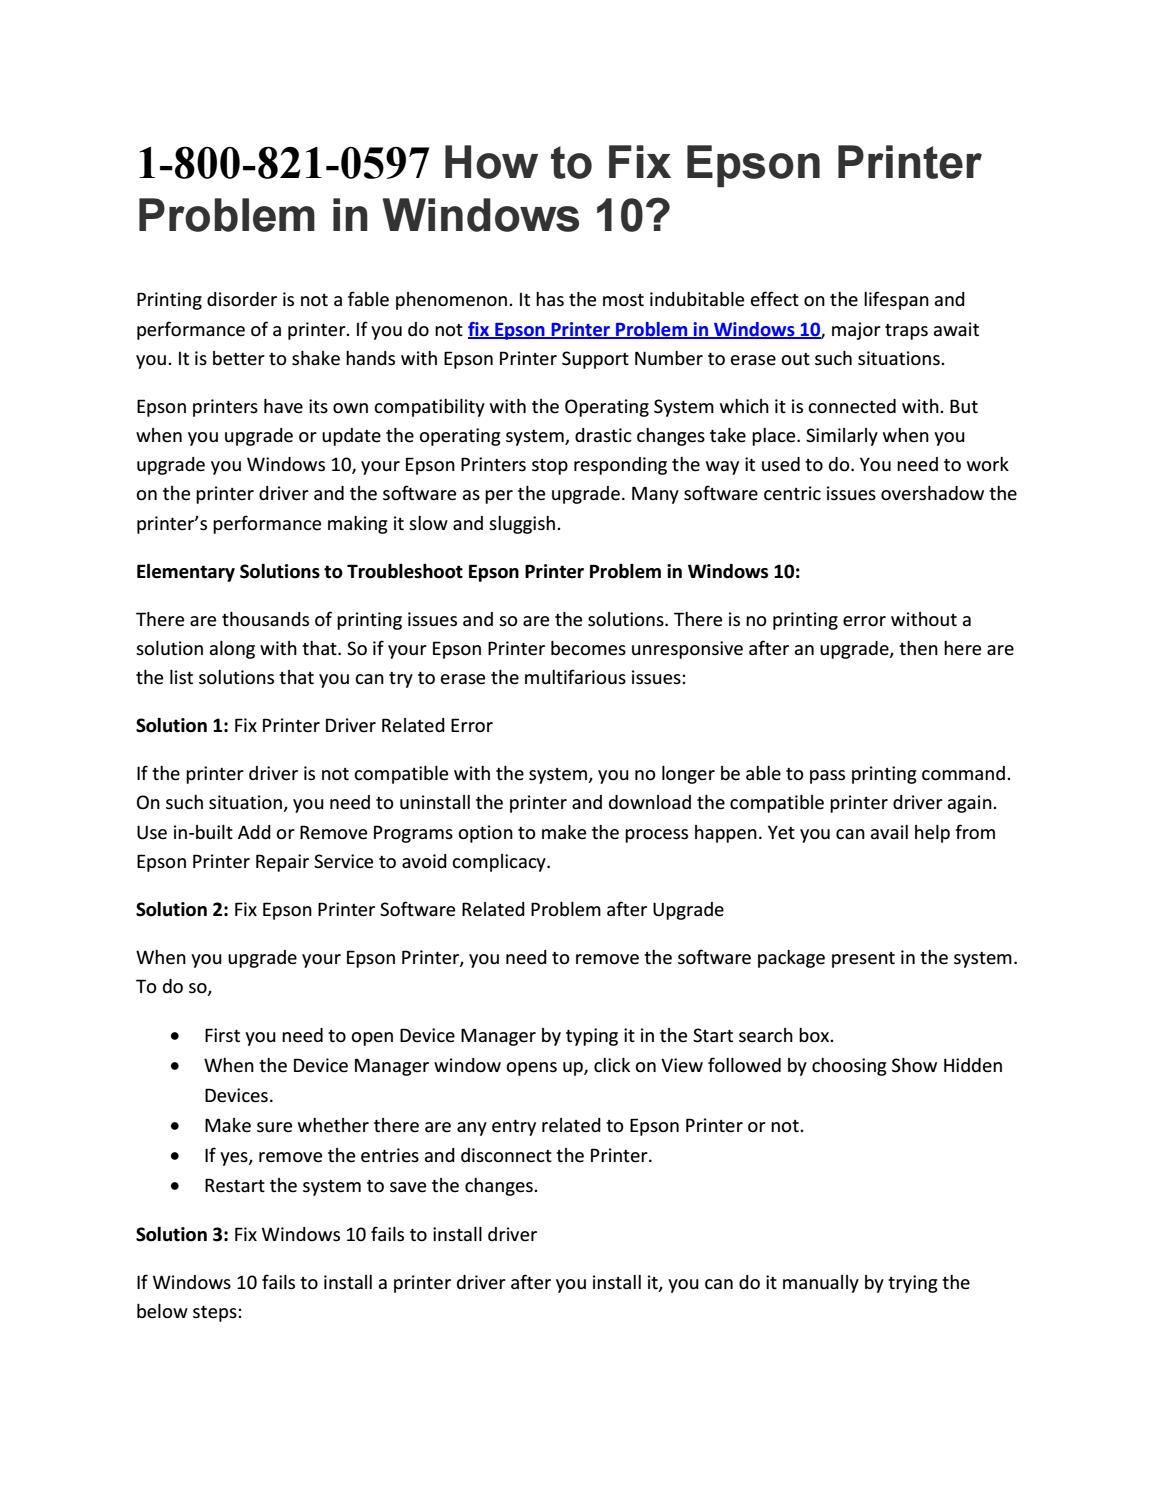 1-800-821-0597 How to Fix Epson Printer Problem in Windows